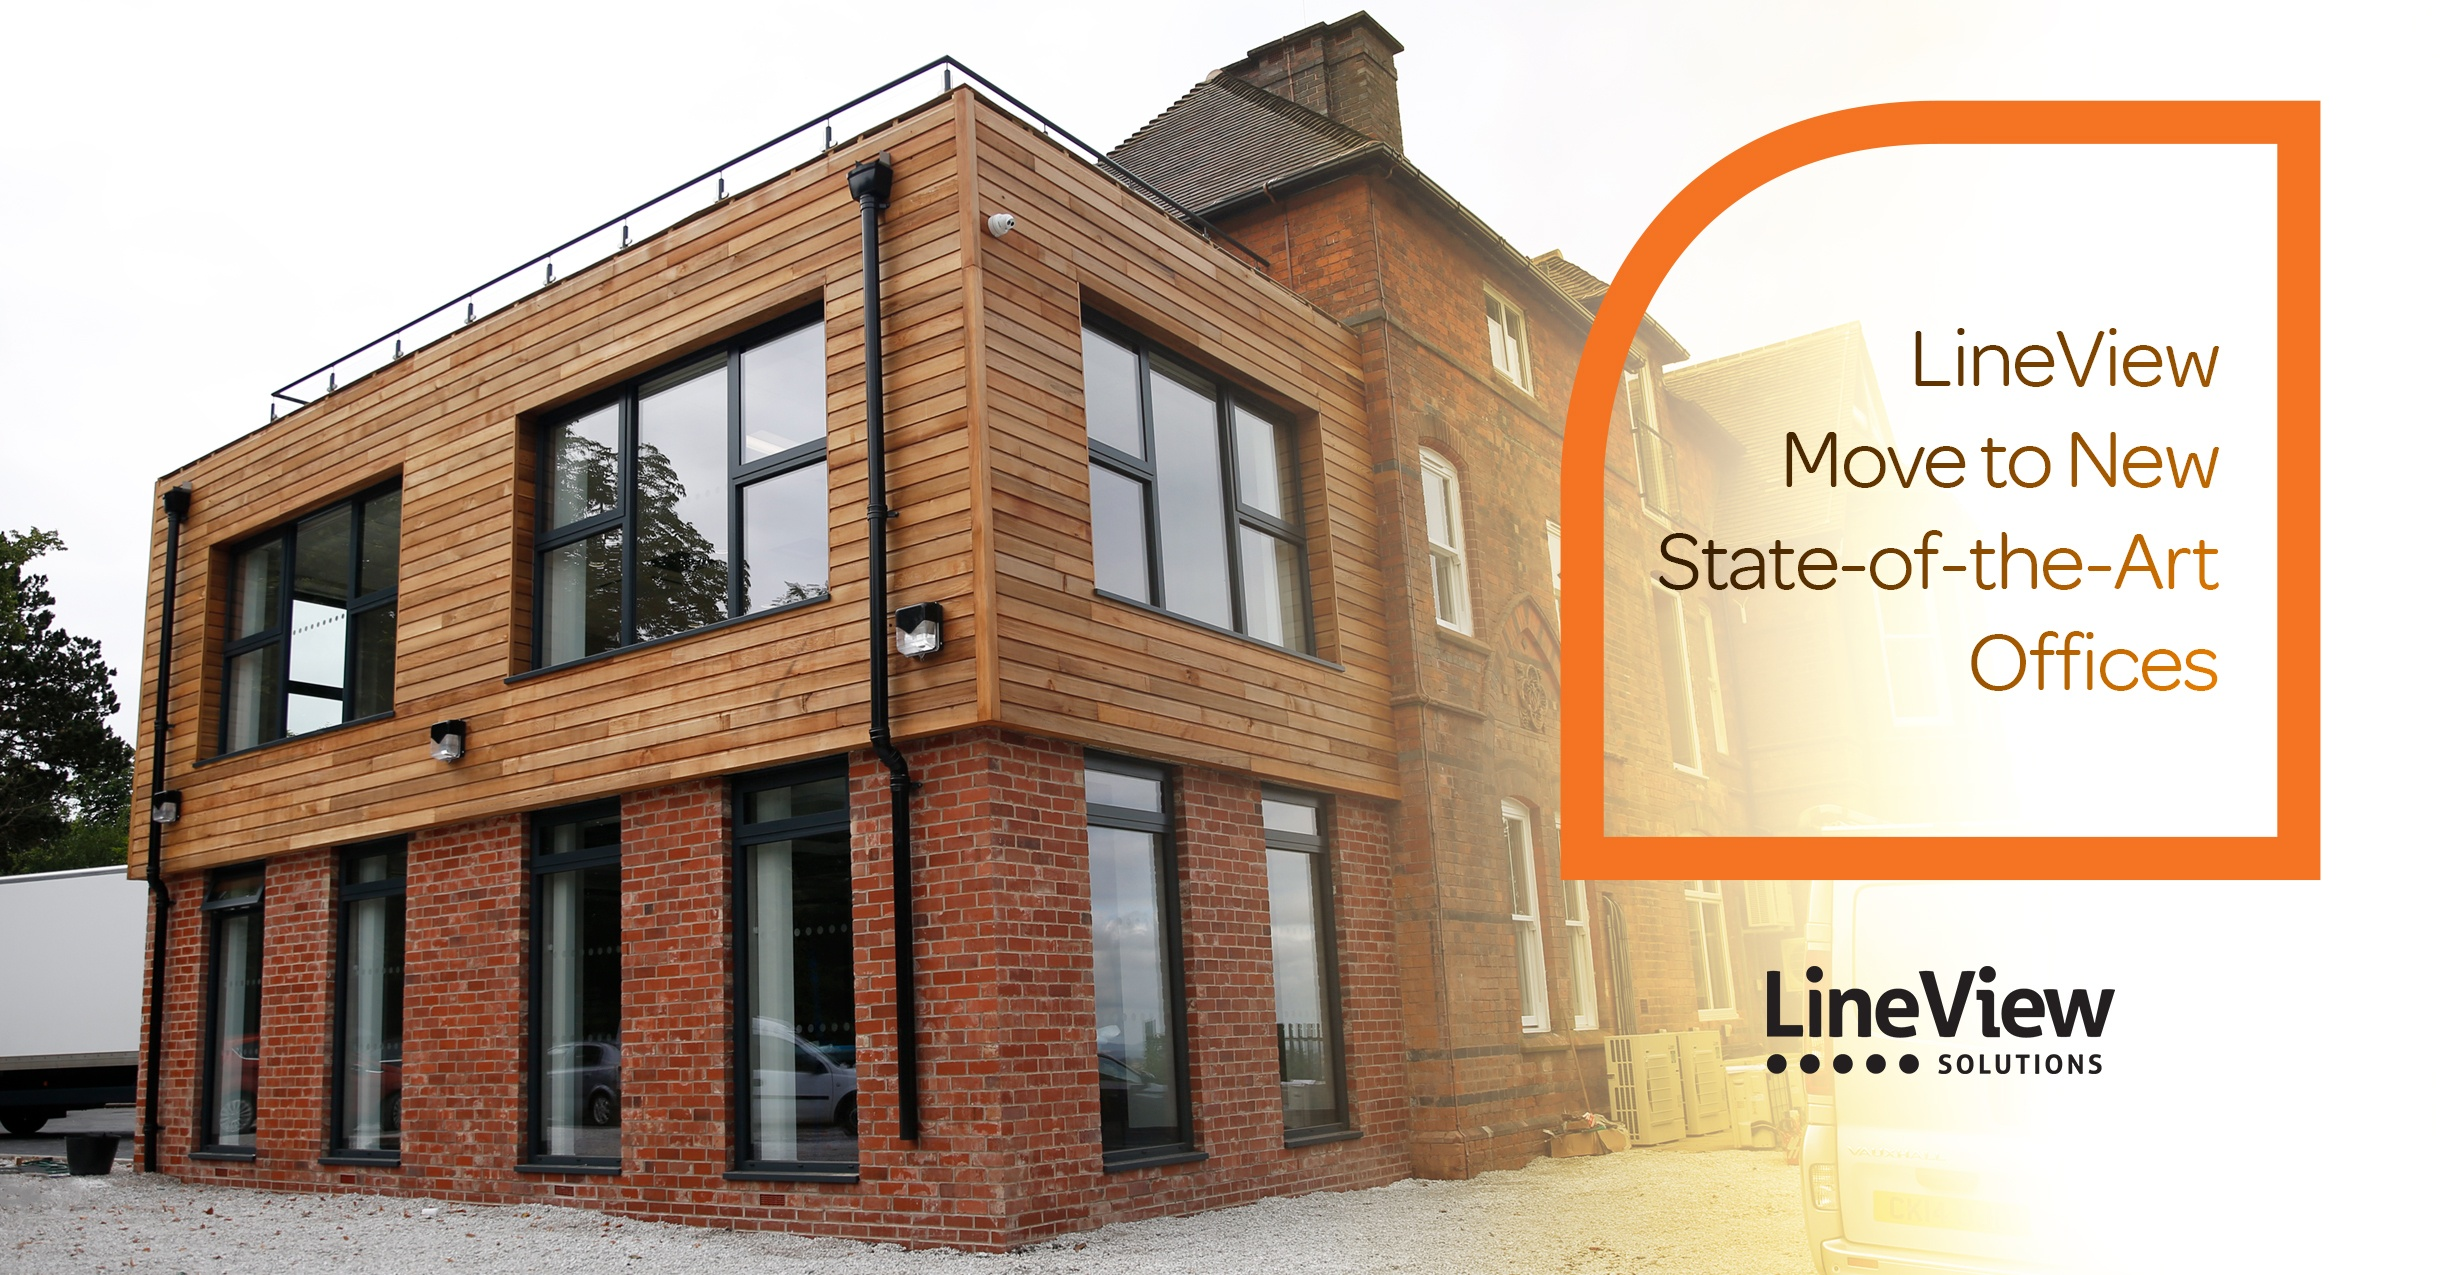 LVS - LineView move to new State-of-the-Art Offices (Web Banner).jpg